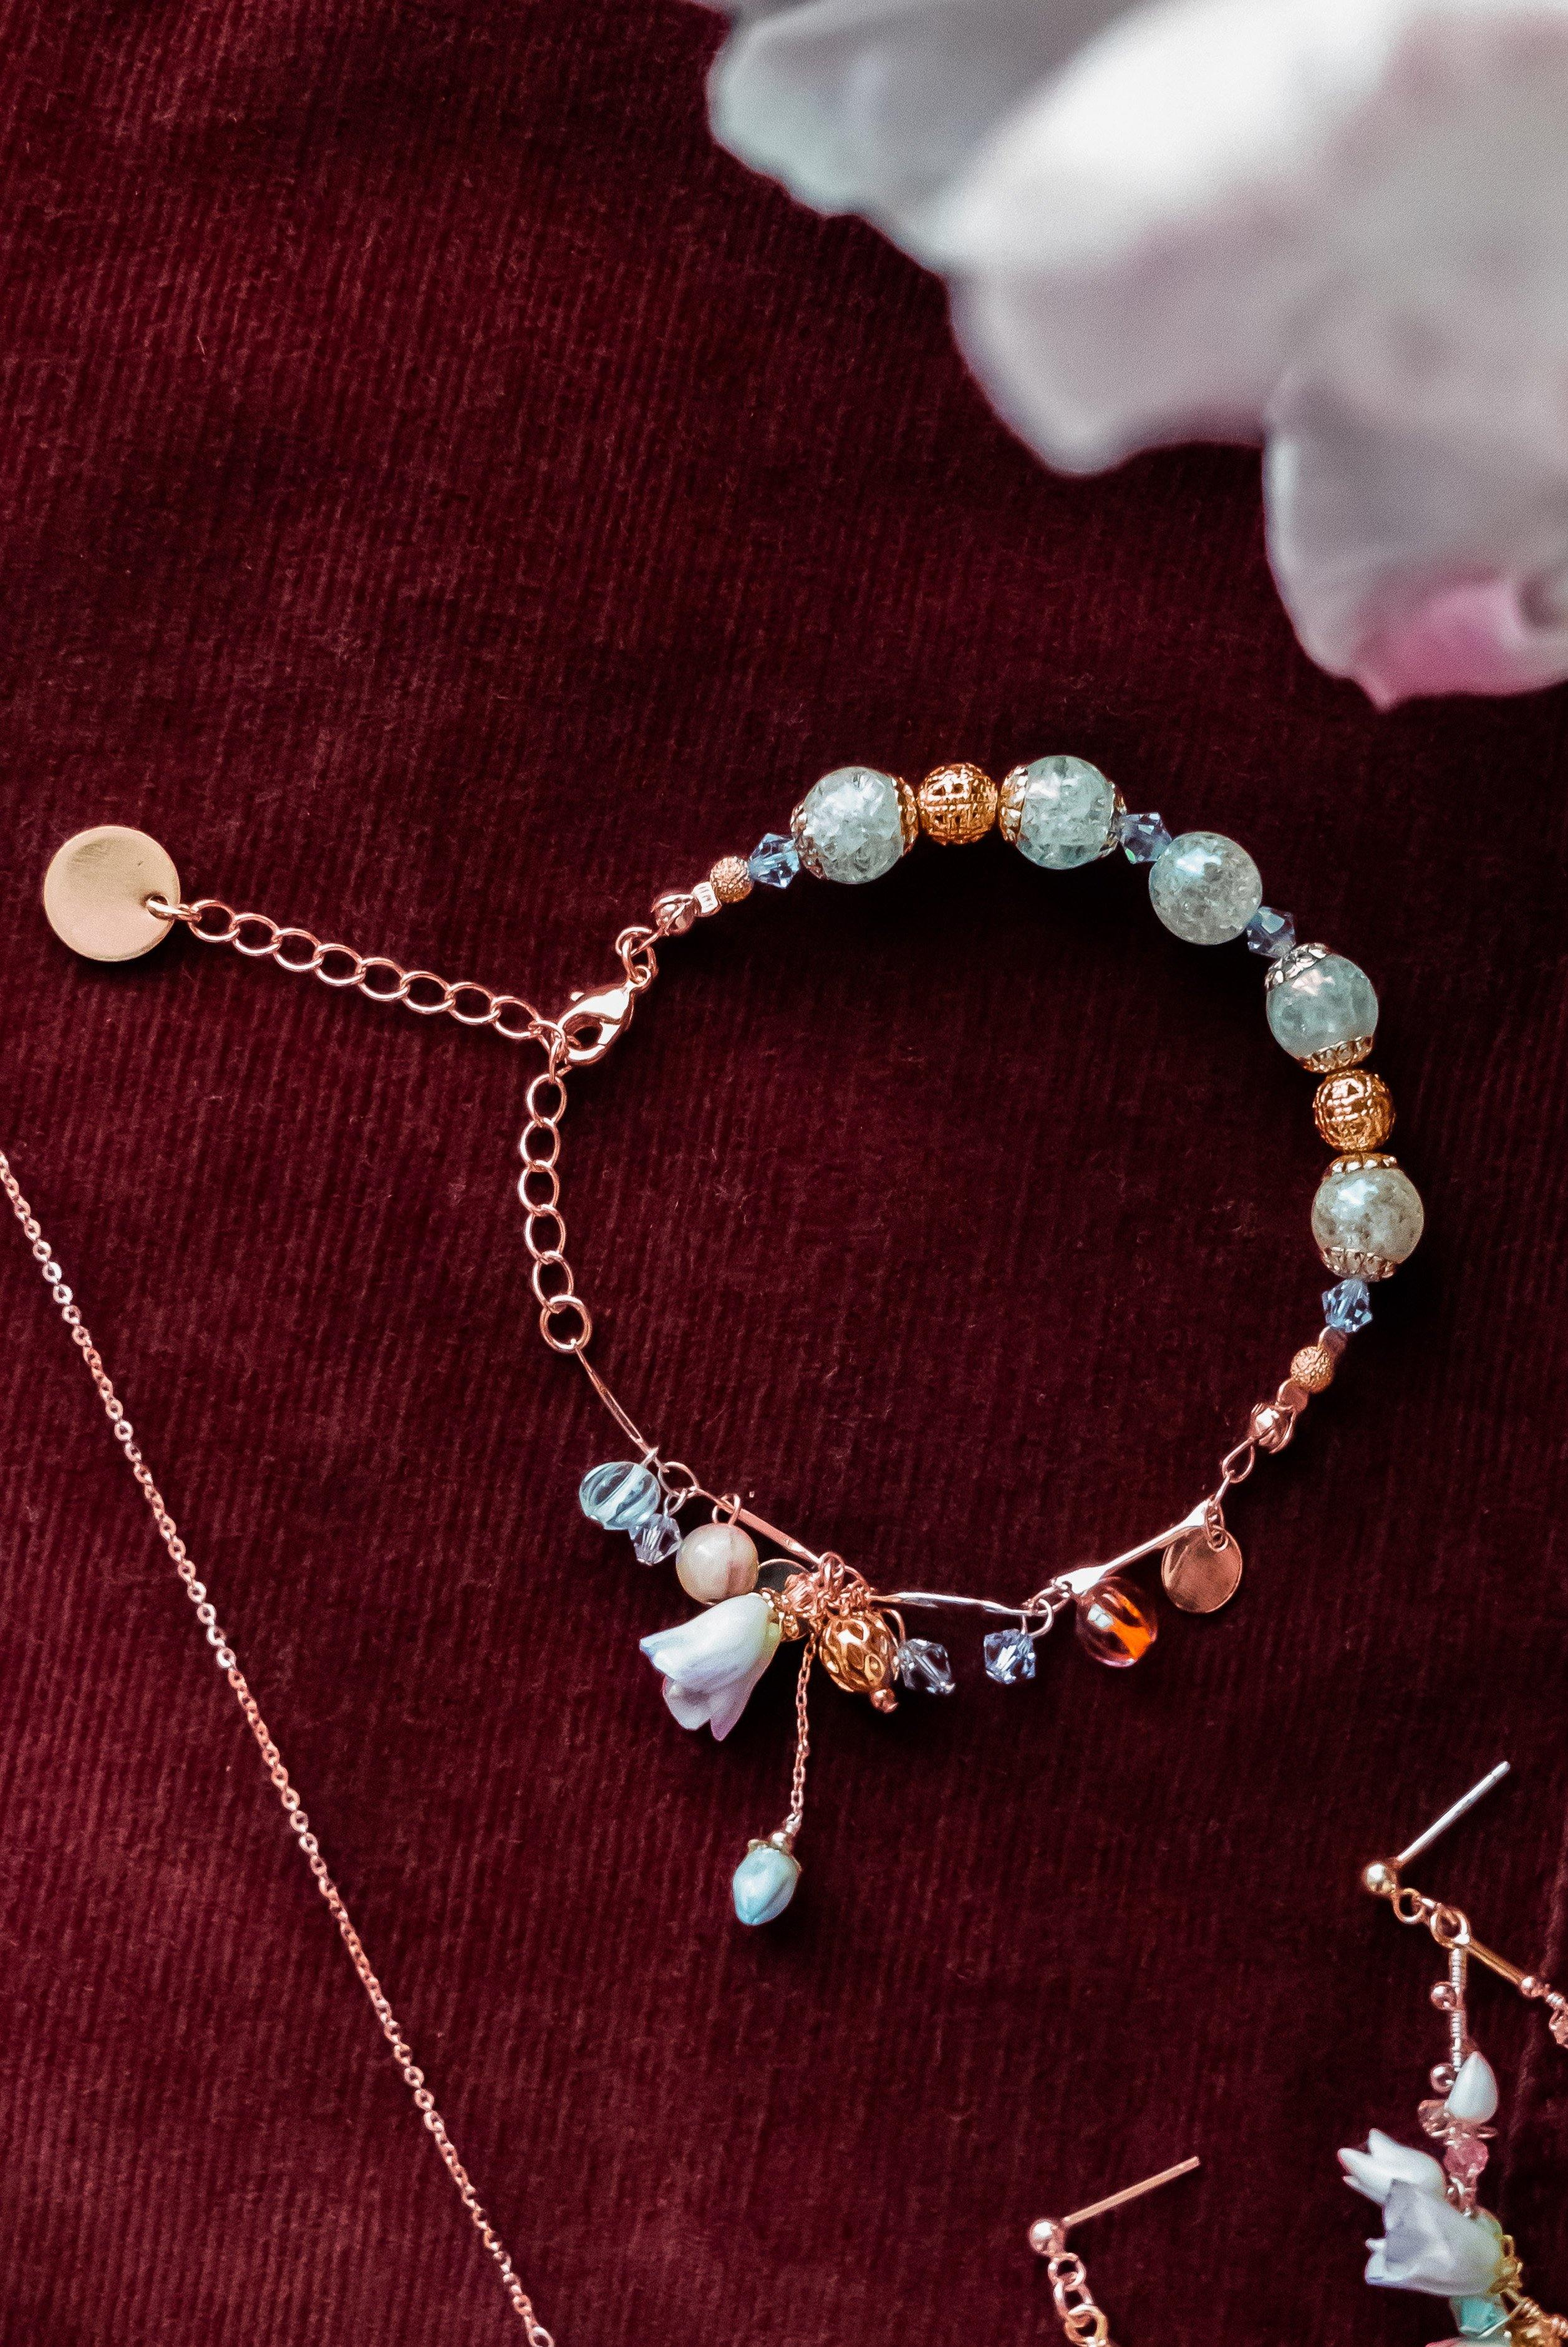 #2 ZODIAC Pisces's Breath Tulip Rose-gold Plated 925 Silver Charm Bracelet